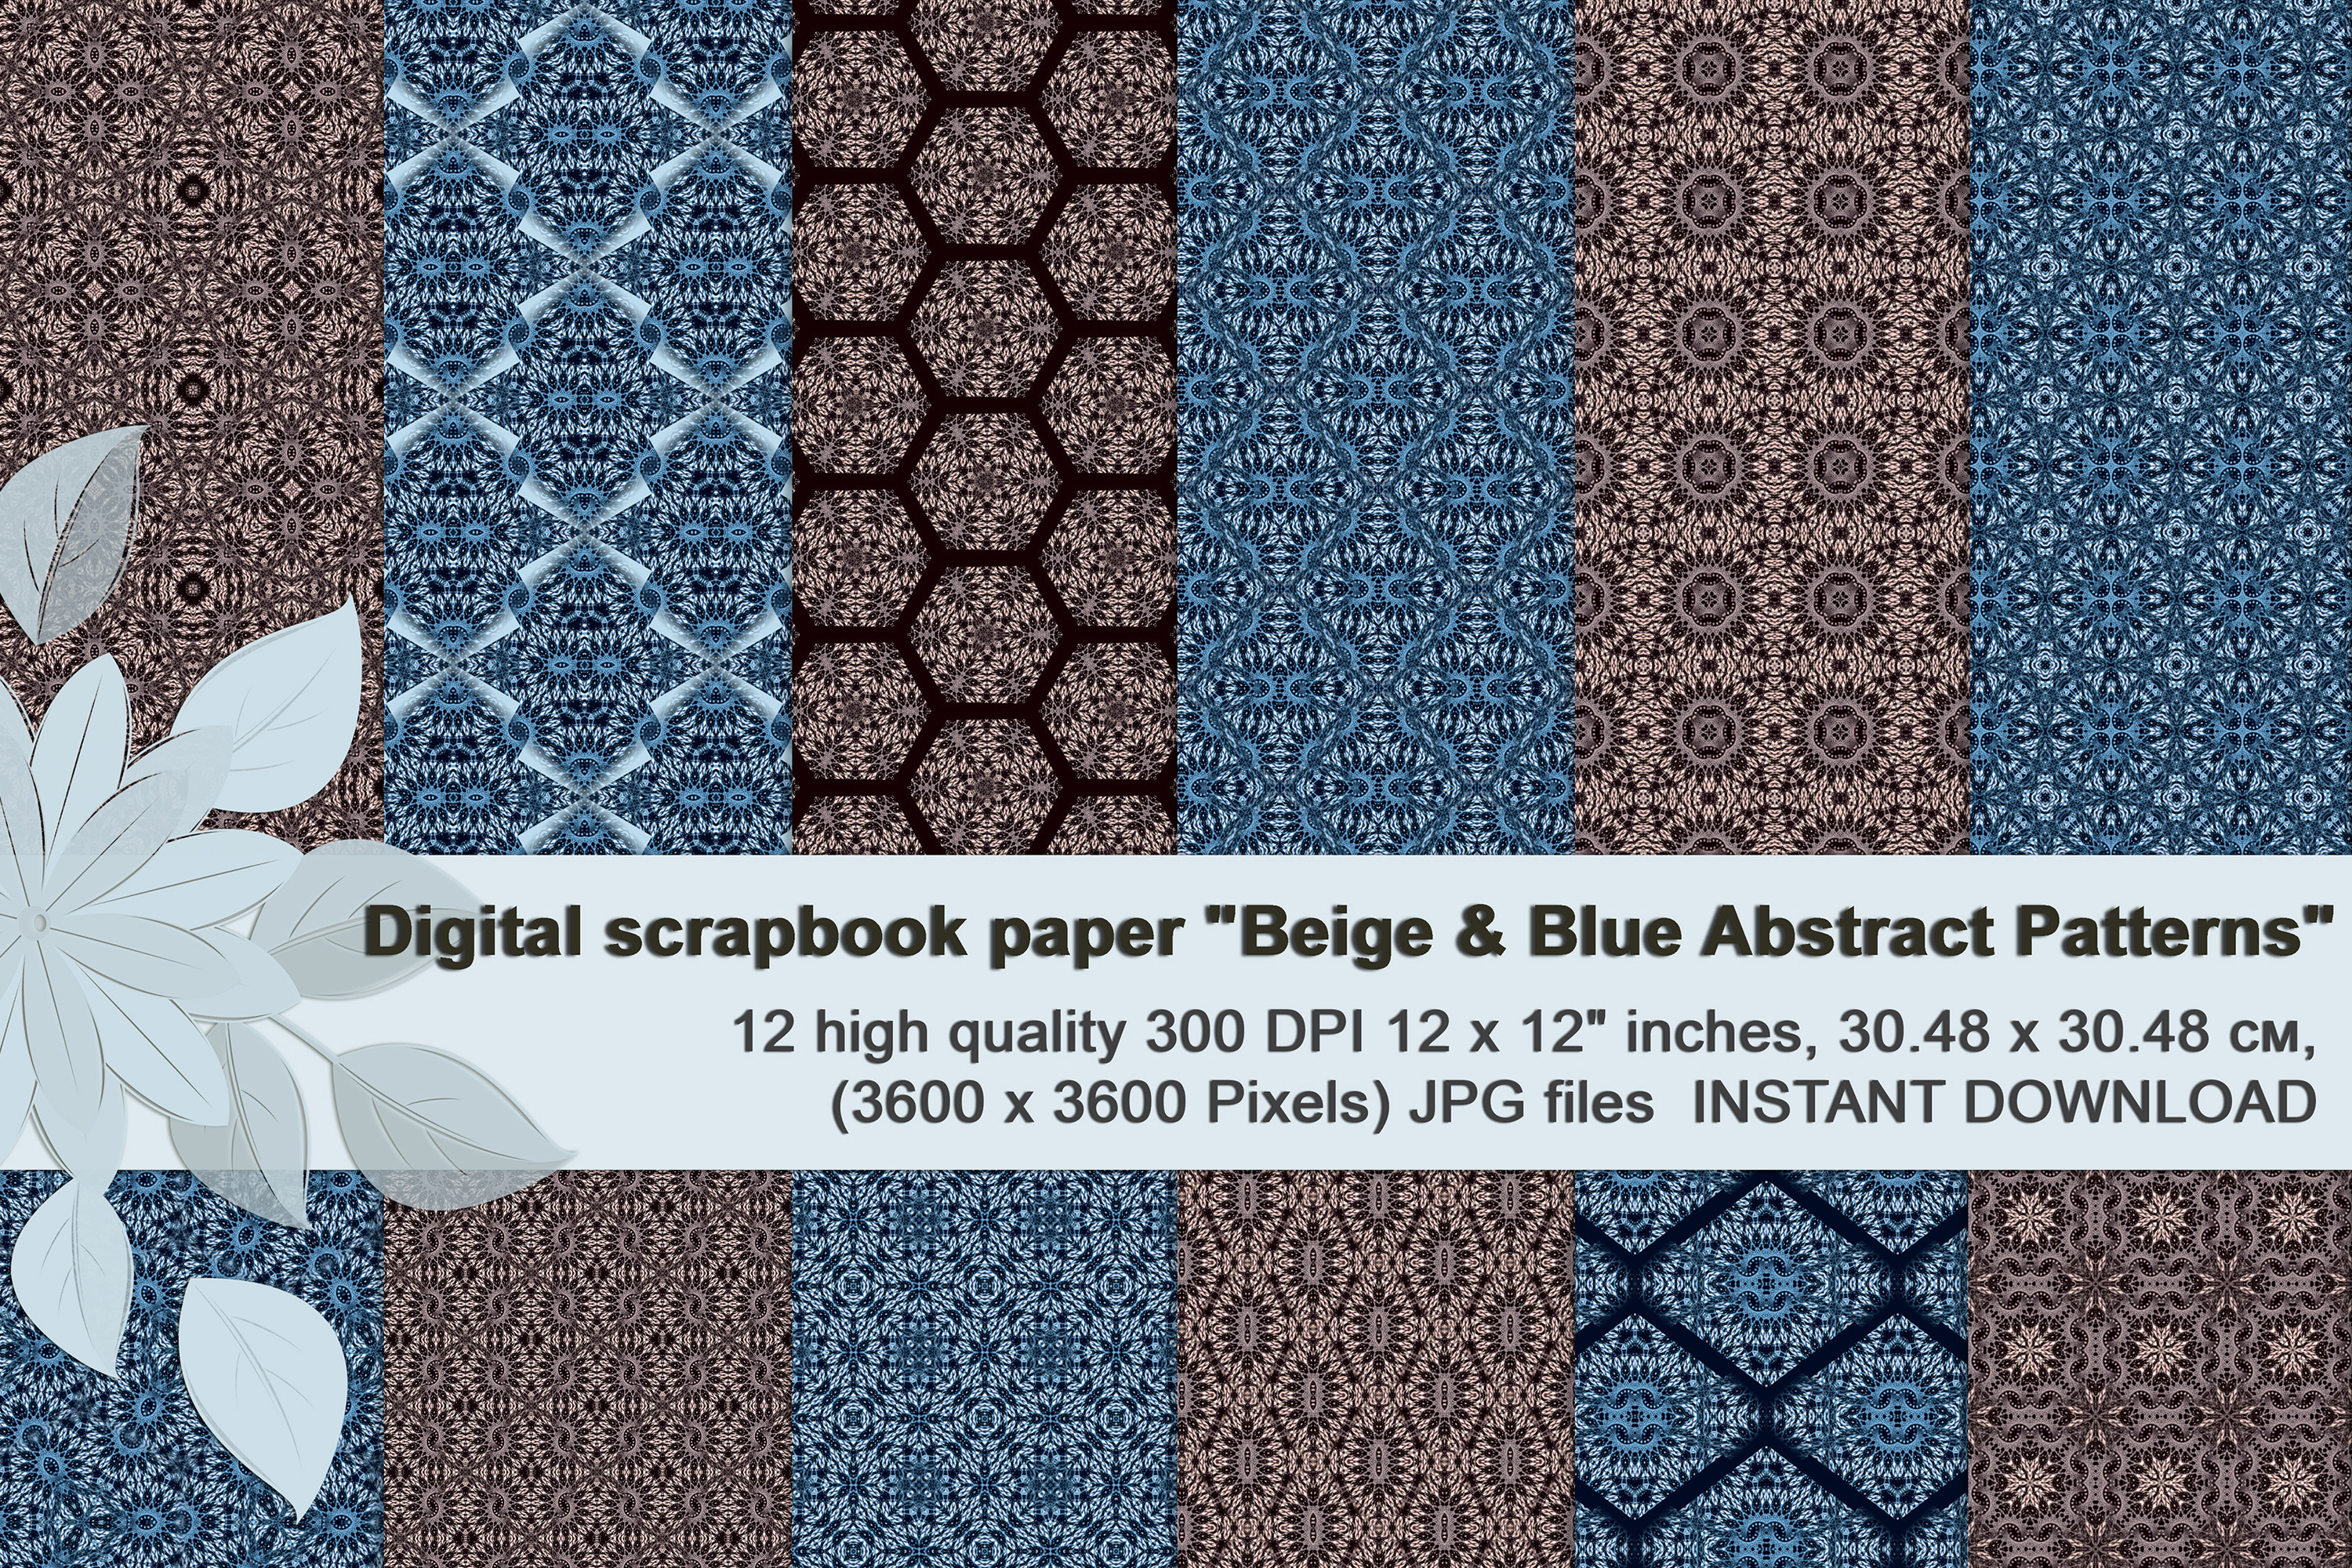 Beige and blue abstract, knitted patterns, Scrapbook Paper example image 1